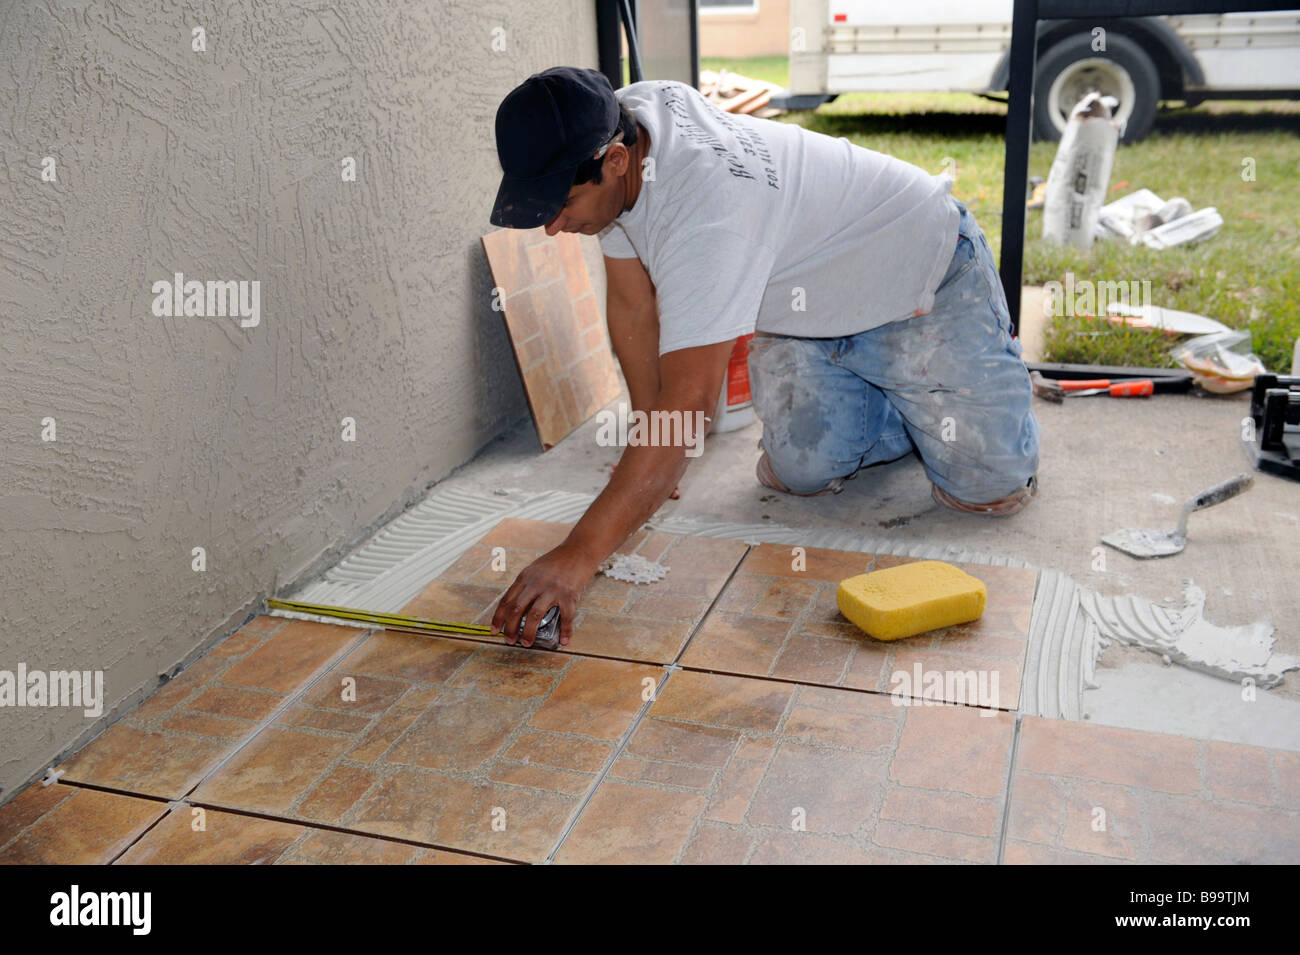 Laying ceramic tile on concrete